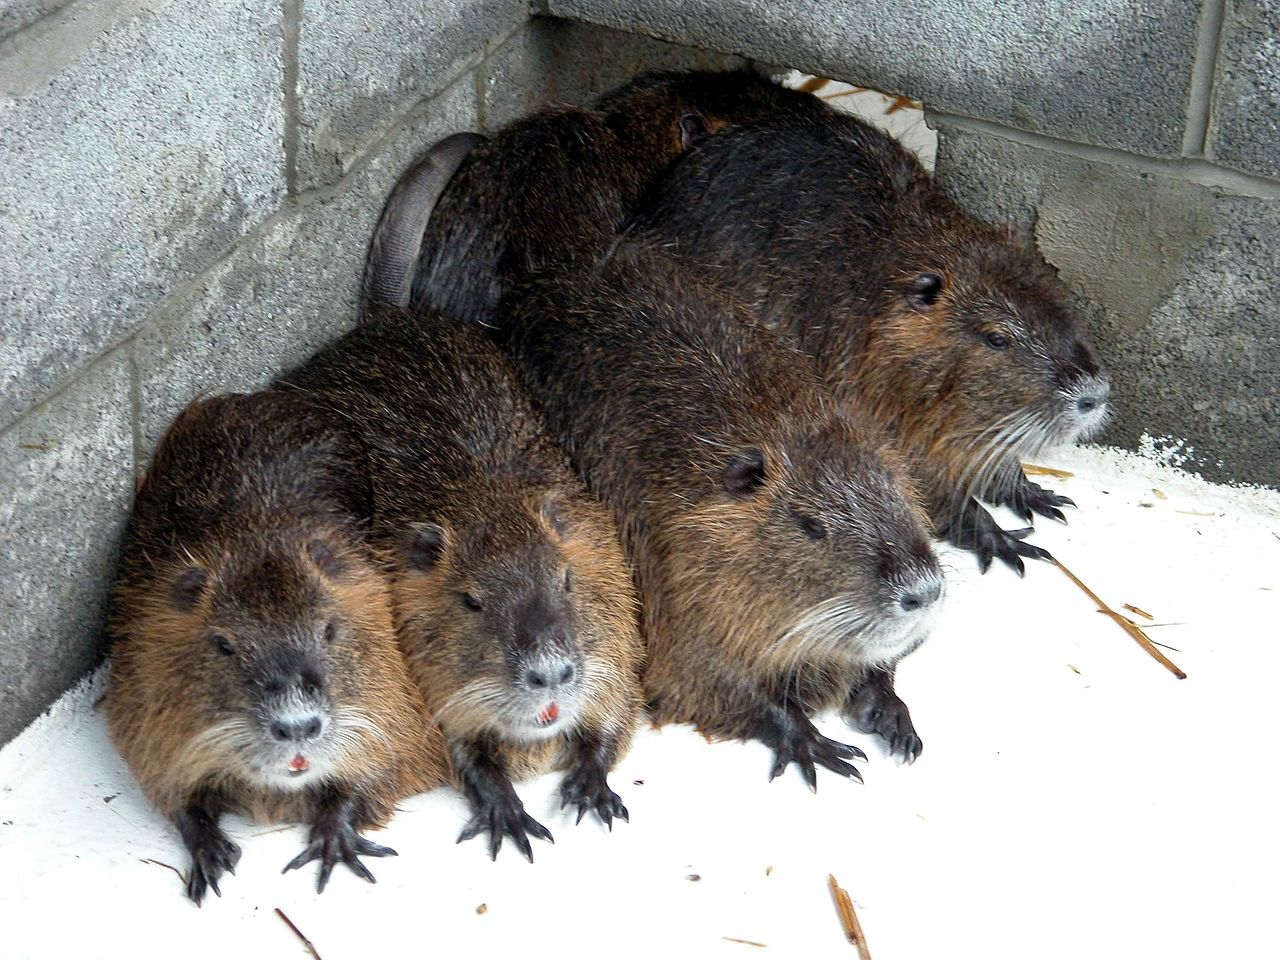 https://upload.wikimedia.org/wikipedia/commons/thumb/f/f3/Close_up_of_nutria_or_coypu_myocastor_coypus.jpg/1280px-Close_up_of_nutria_or_coypu_myocastor_coypus.jpg